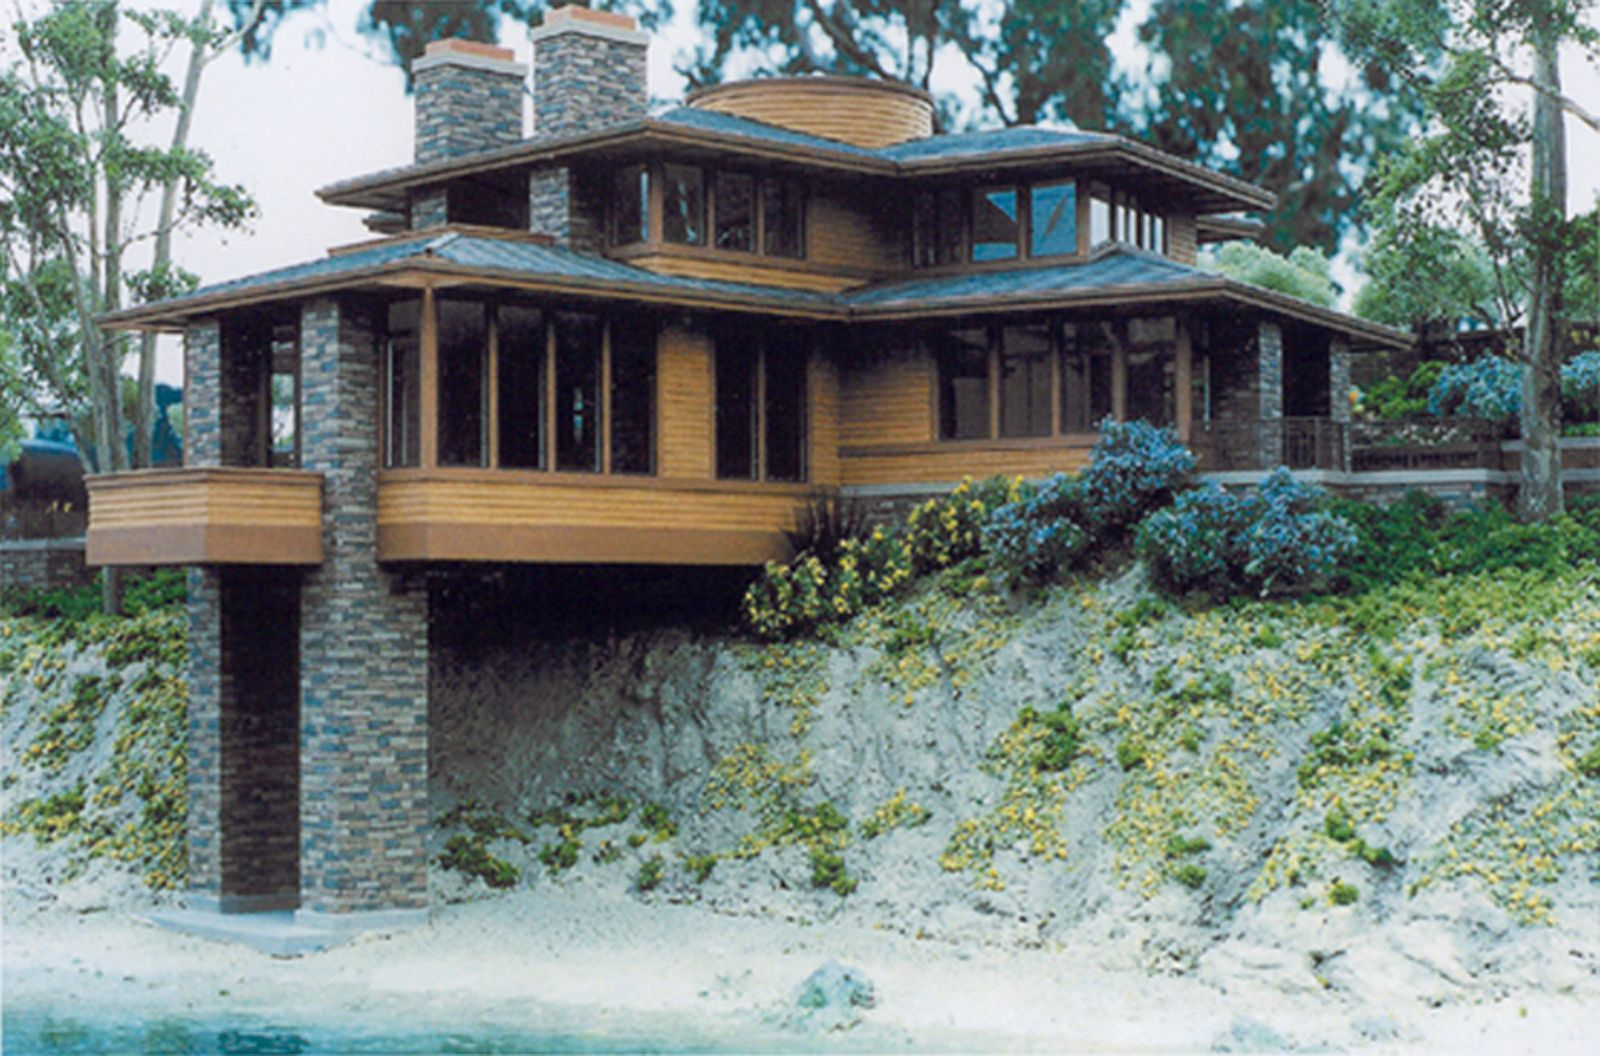 Frank lloyd wright style houses projects idea of 5 frank for Frank lloyd wright stile prateria